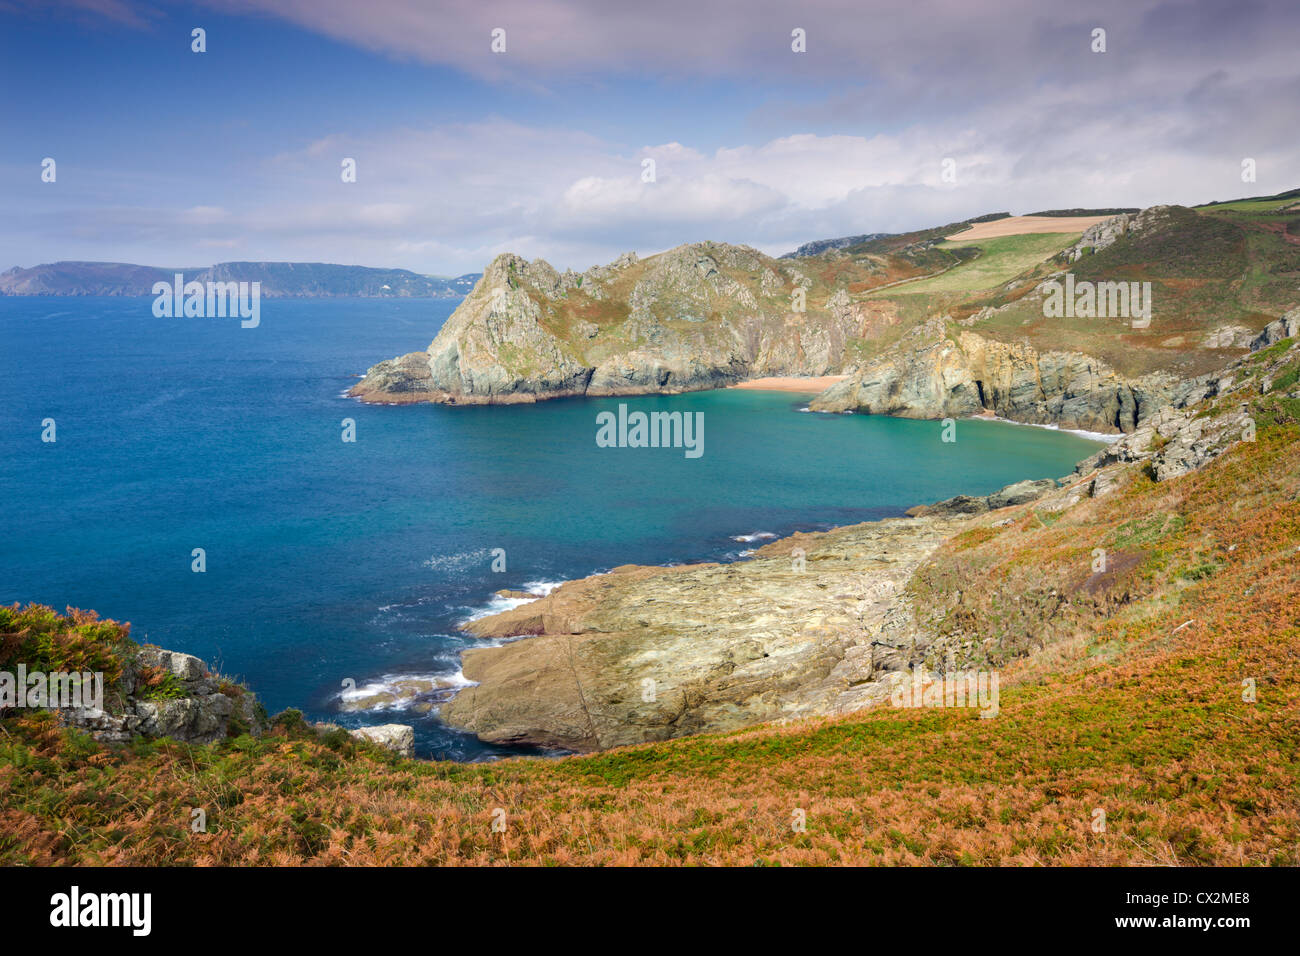 Looking towards Elender Cove and Gammon Head from the South West Coast Path footpath near Prawle Point, South Hams, - Stock Image